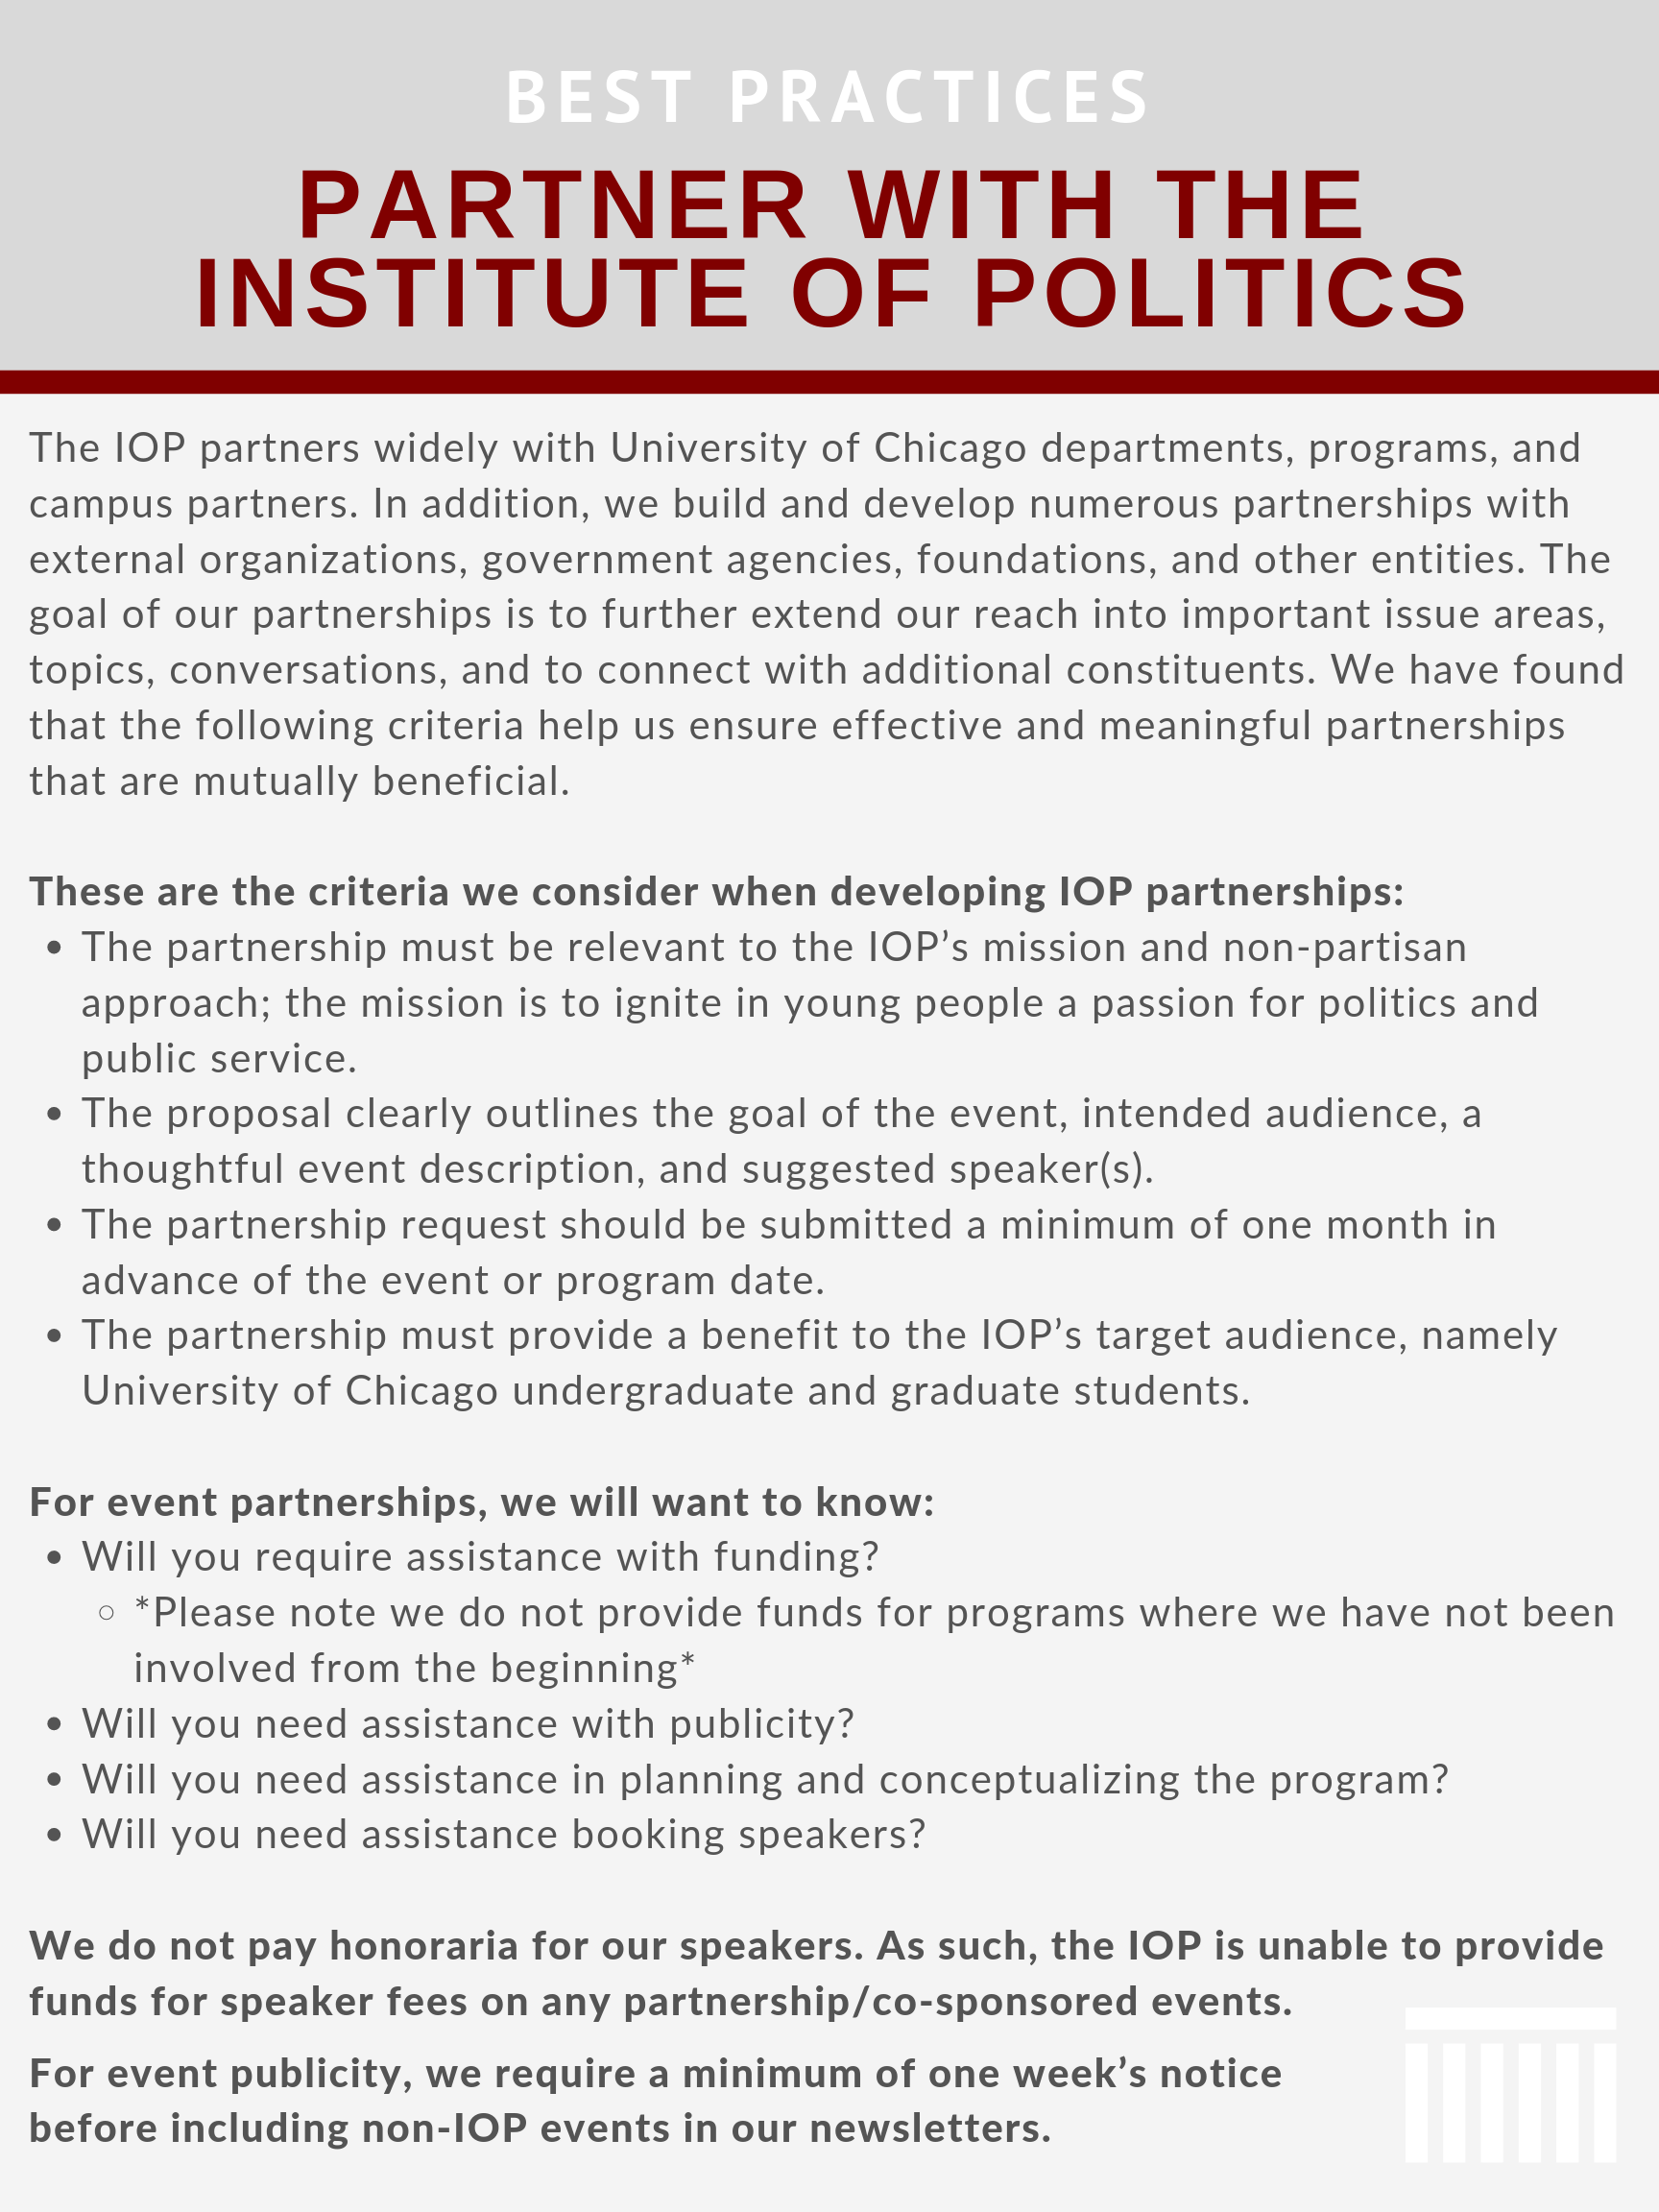 Partner with the IOP | Institute of Politics | The